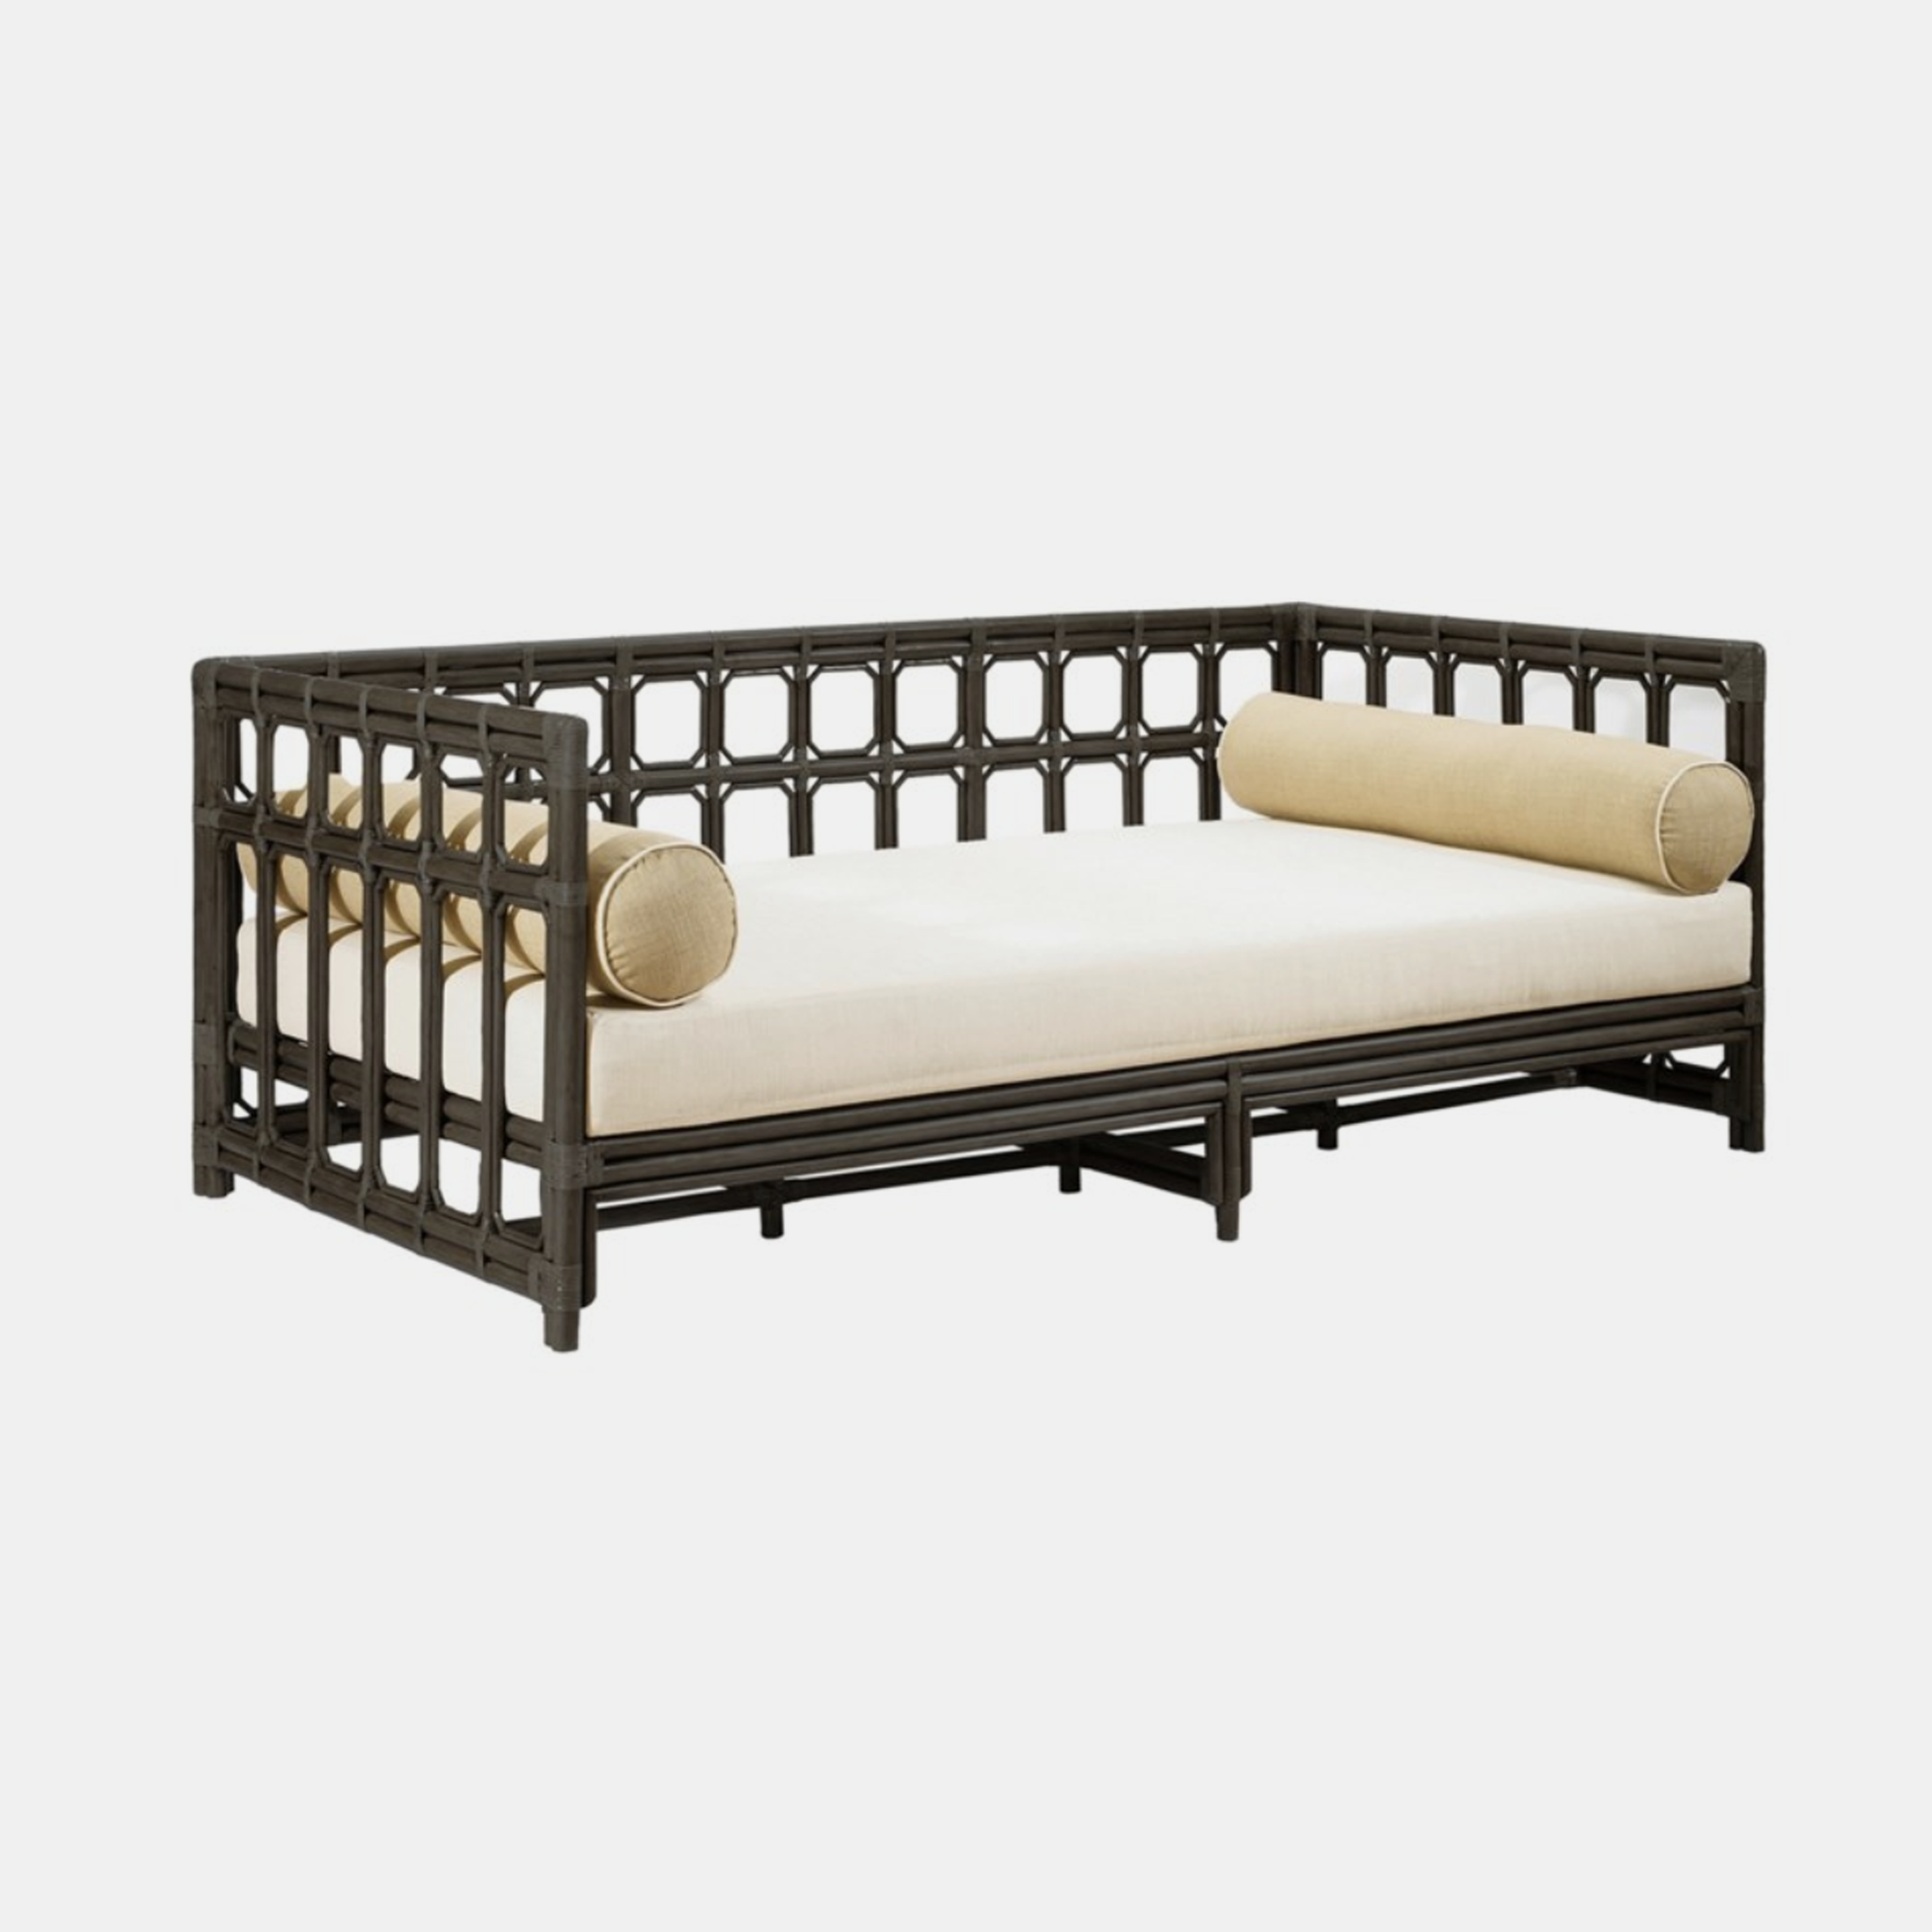 Regeant Daybed  78.5''l x 42.5''d x 30''h Available in clove (shown) and nutmeg. SKU8847SLM